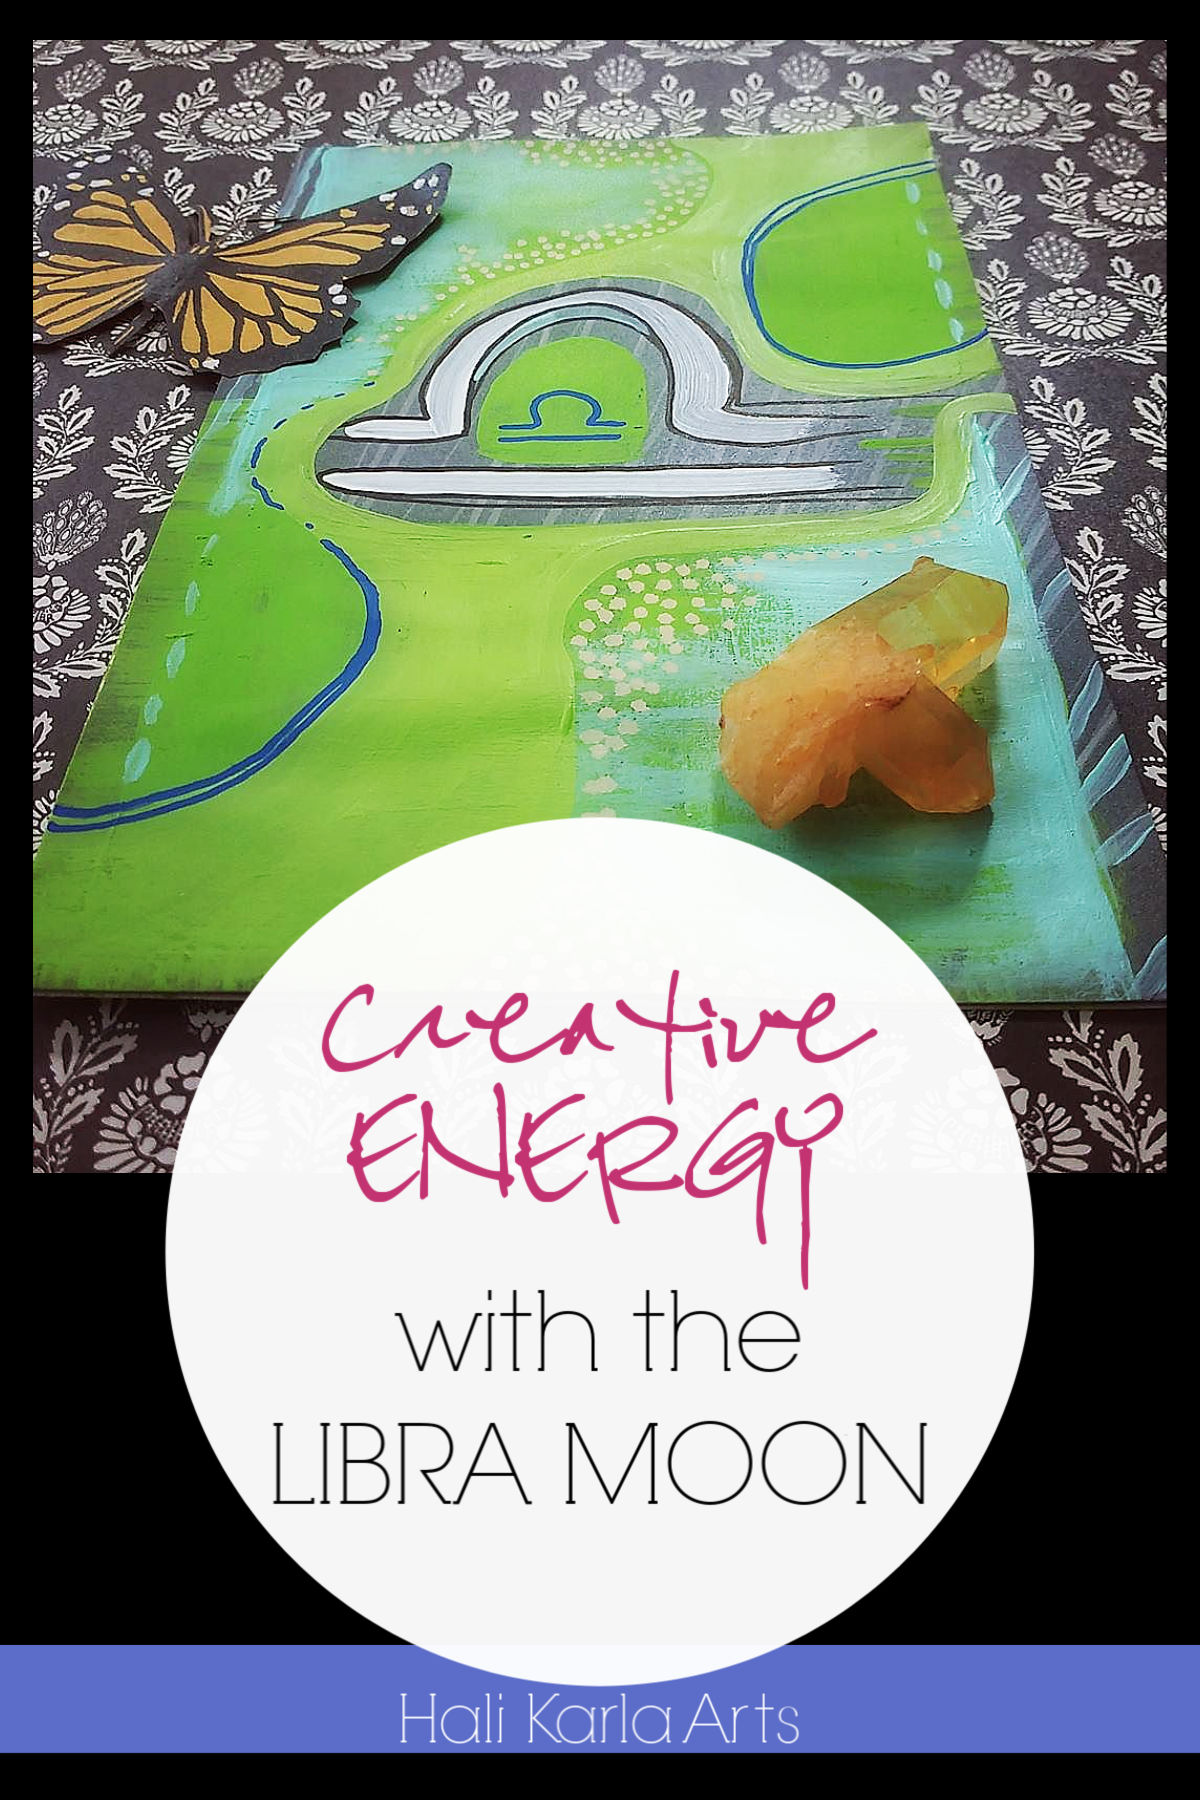 Creative Energy focus when the Moon is the the sign of LIBRA | Hali Karla Arts